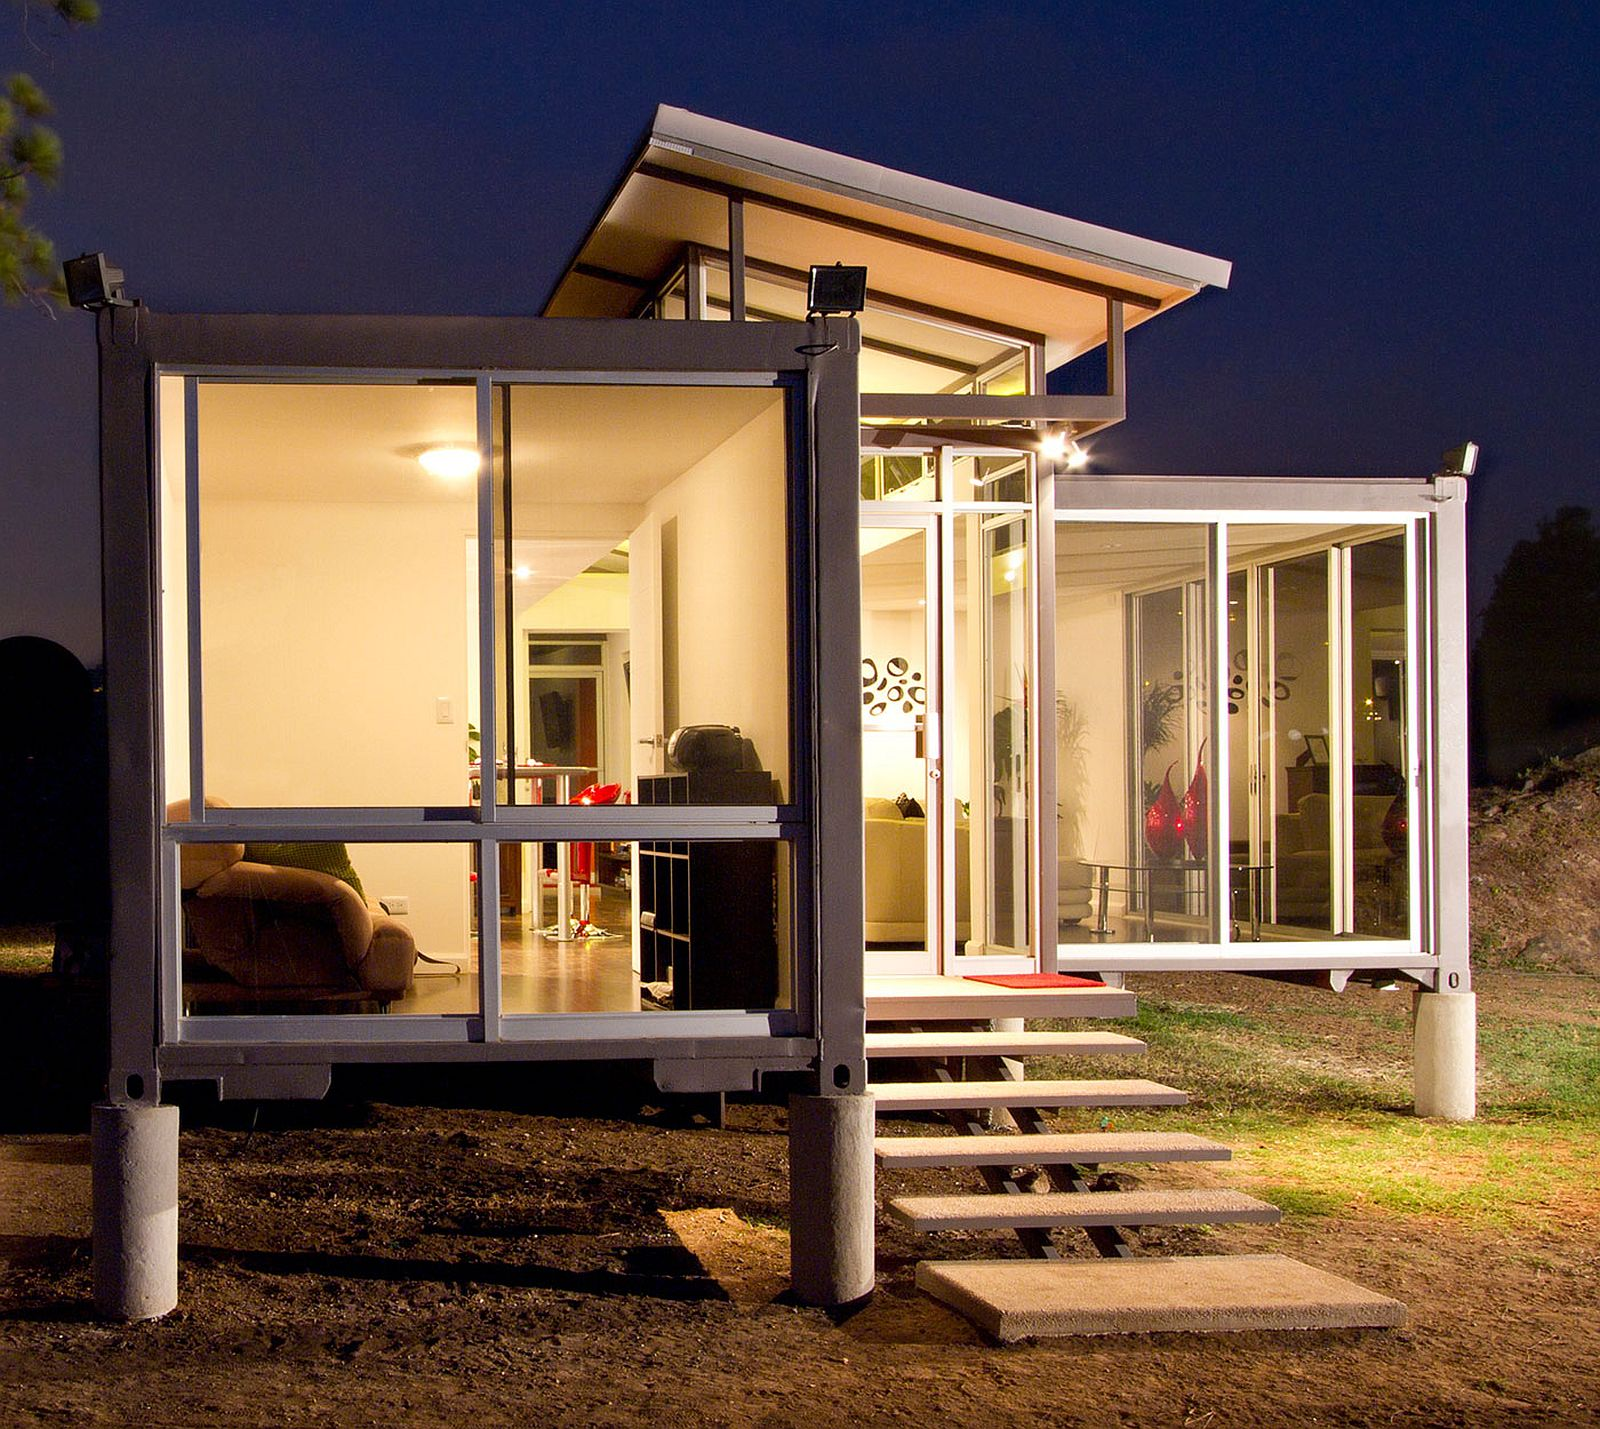 Containers of hope a low cost home by benjamin garcia saxe small house bliss - Foot shipping container home ...